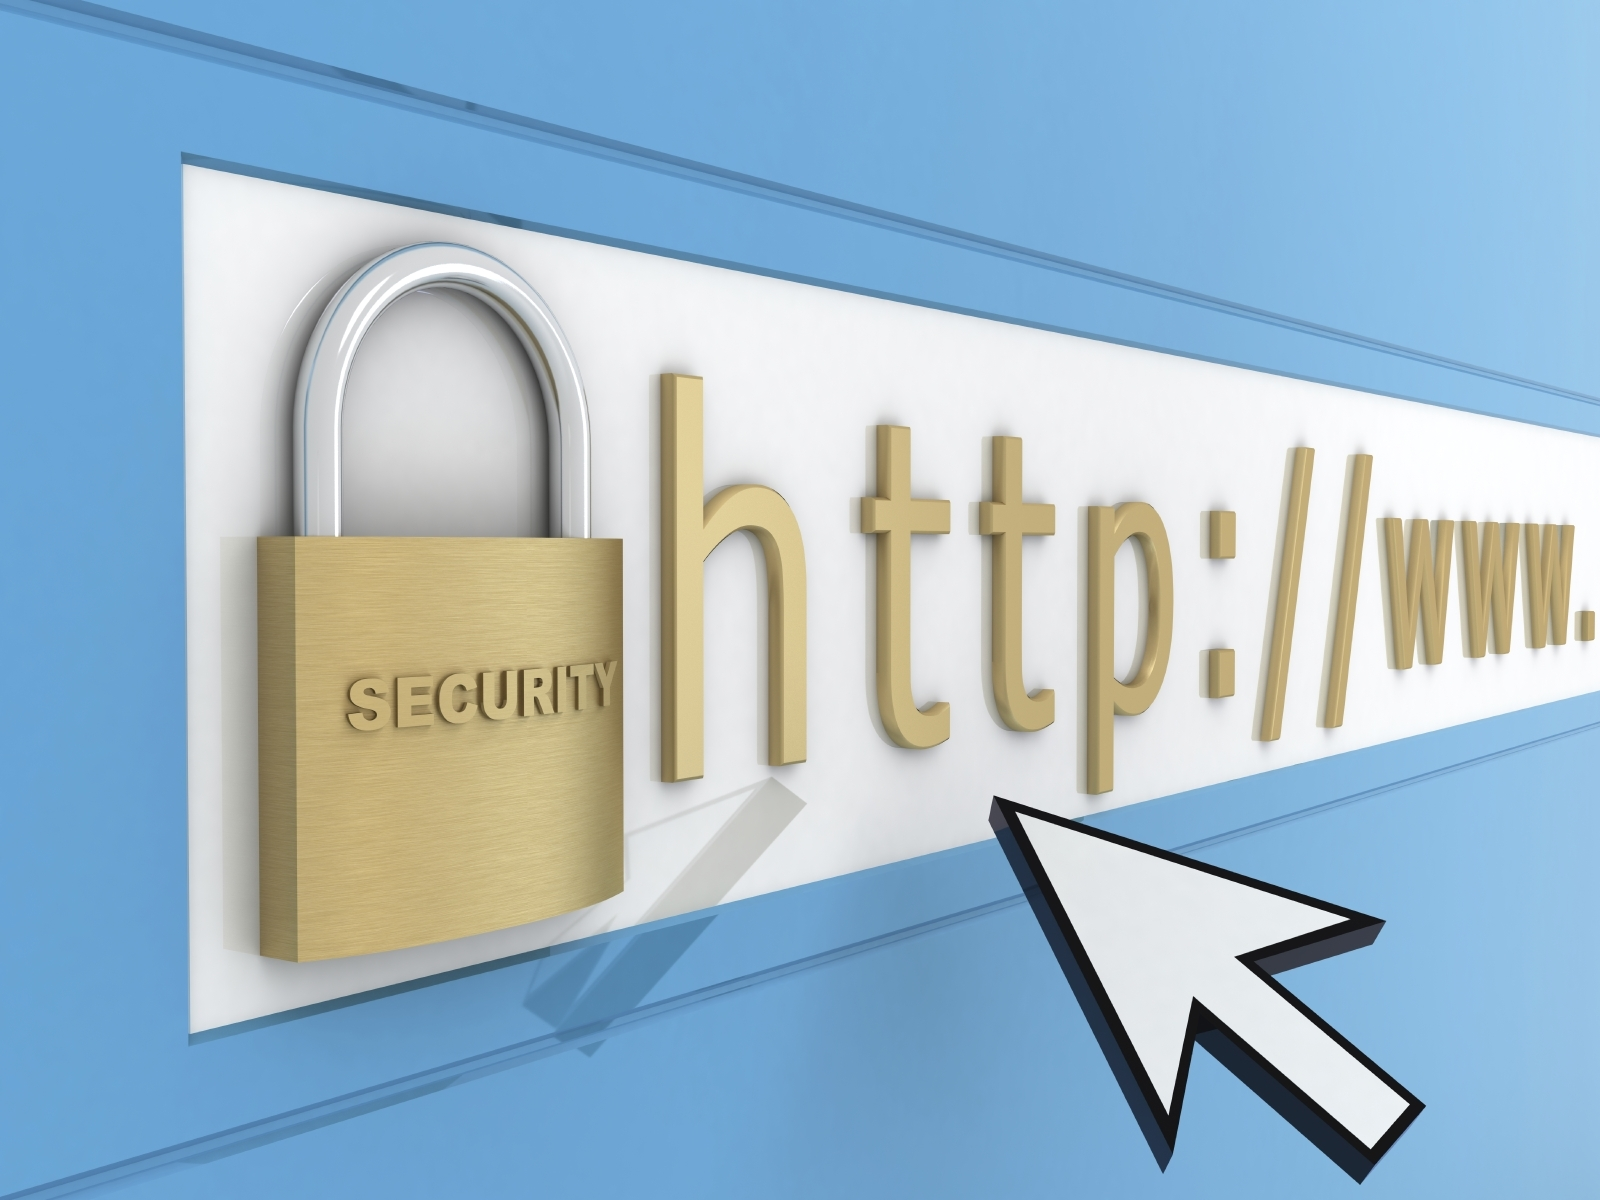 I will keep your website safe.